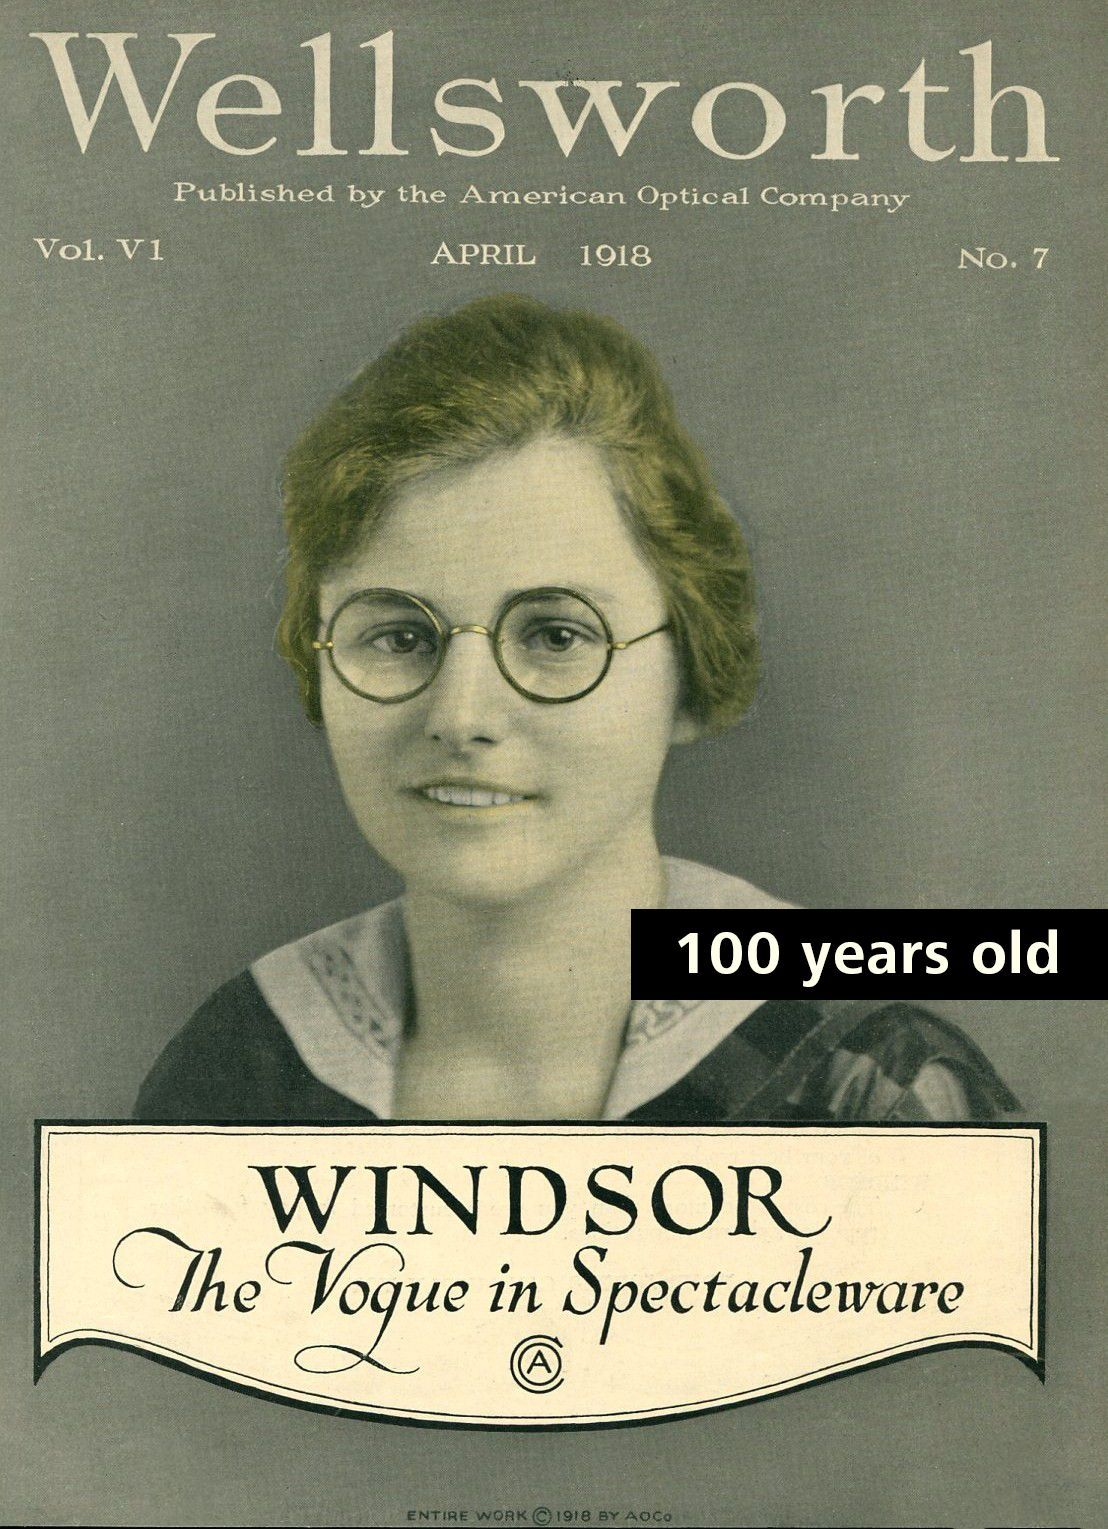 This young lady was the face of our cover years ago in do